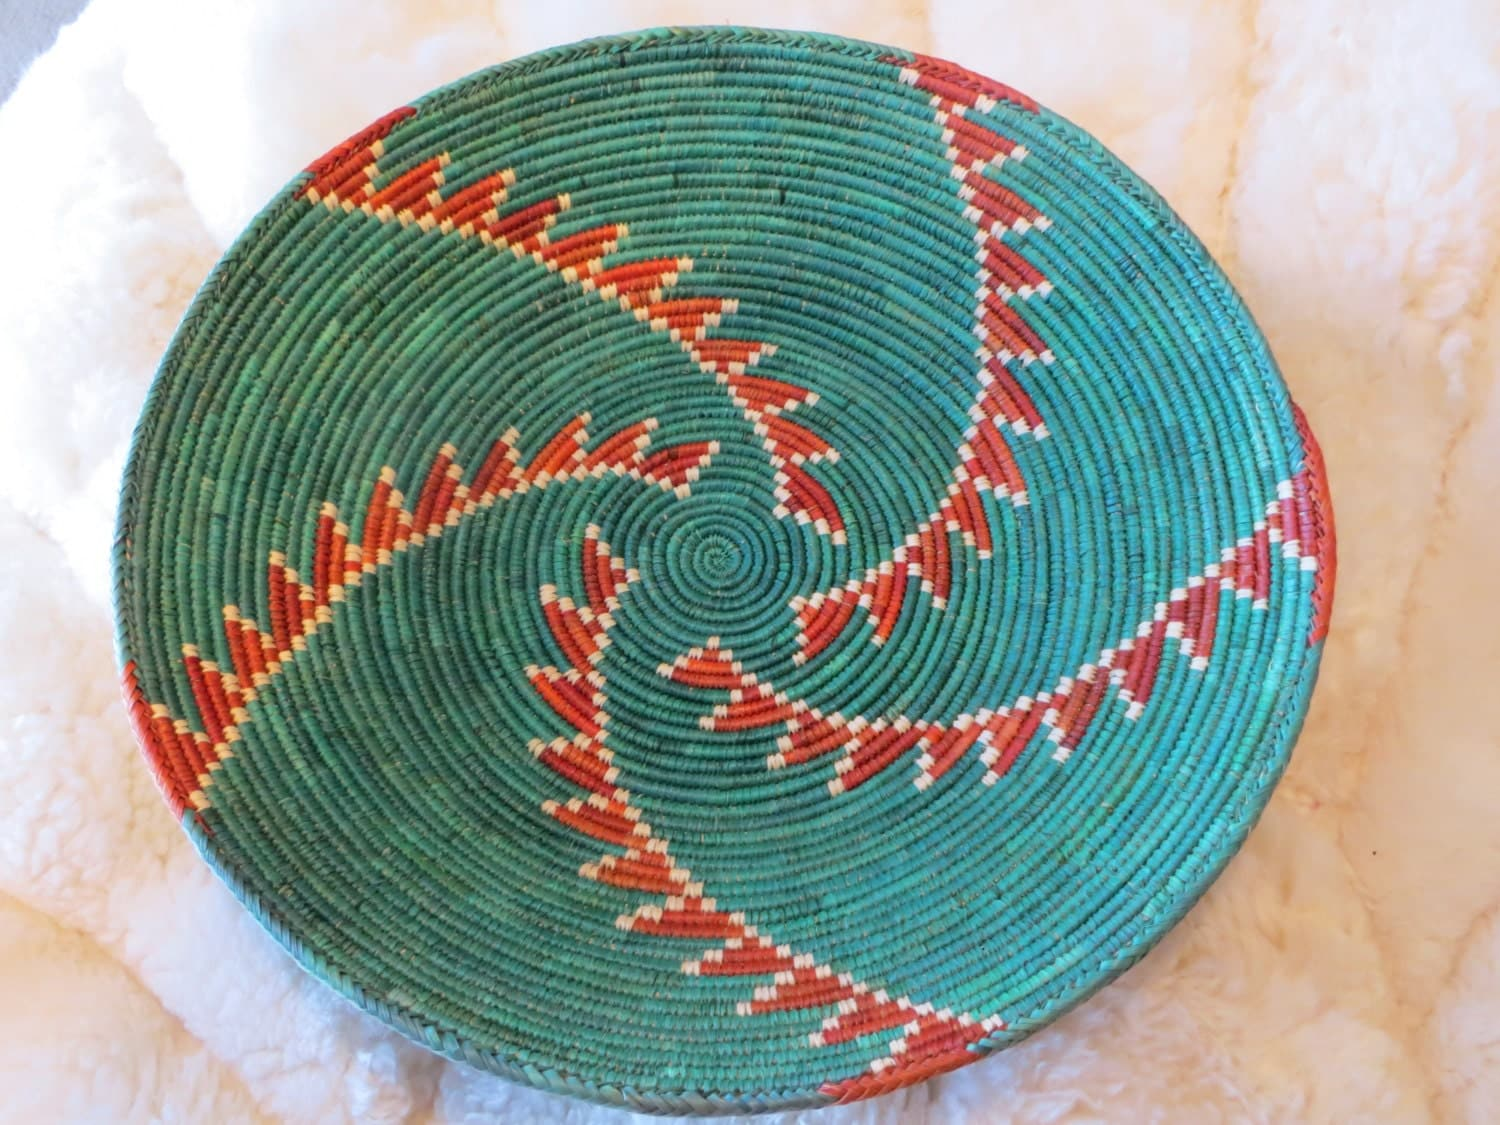 FREE SHIPPING!  Large colorful southwestern basket, appears hand woven, possibly native American, intricate detailing